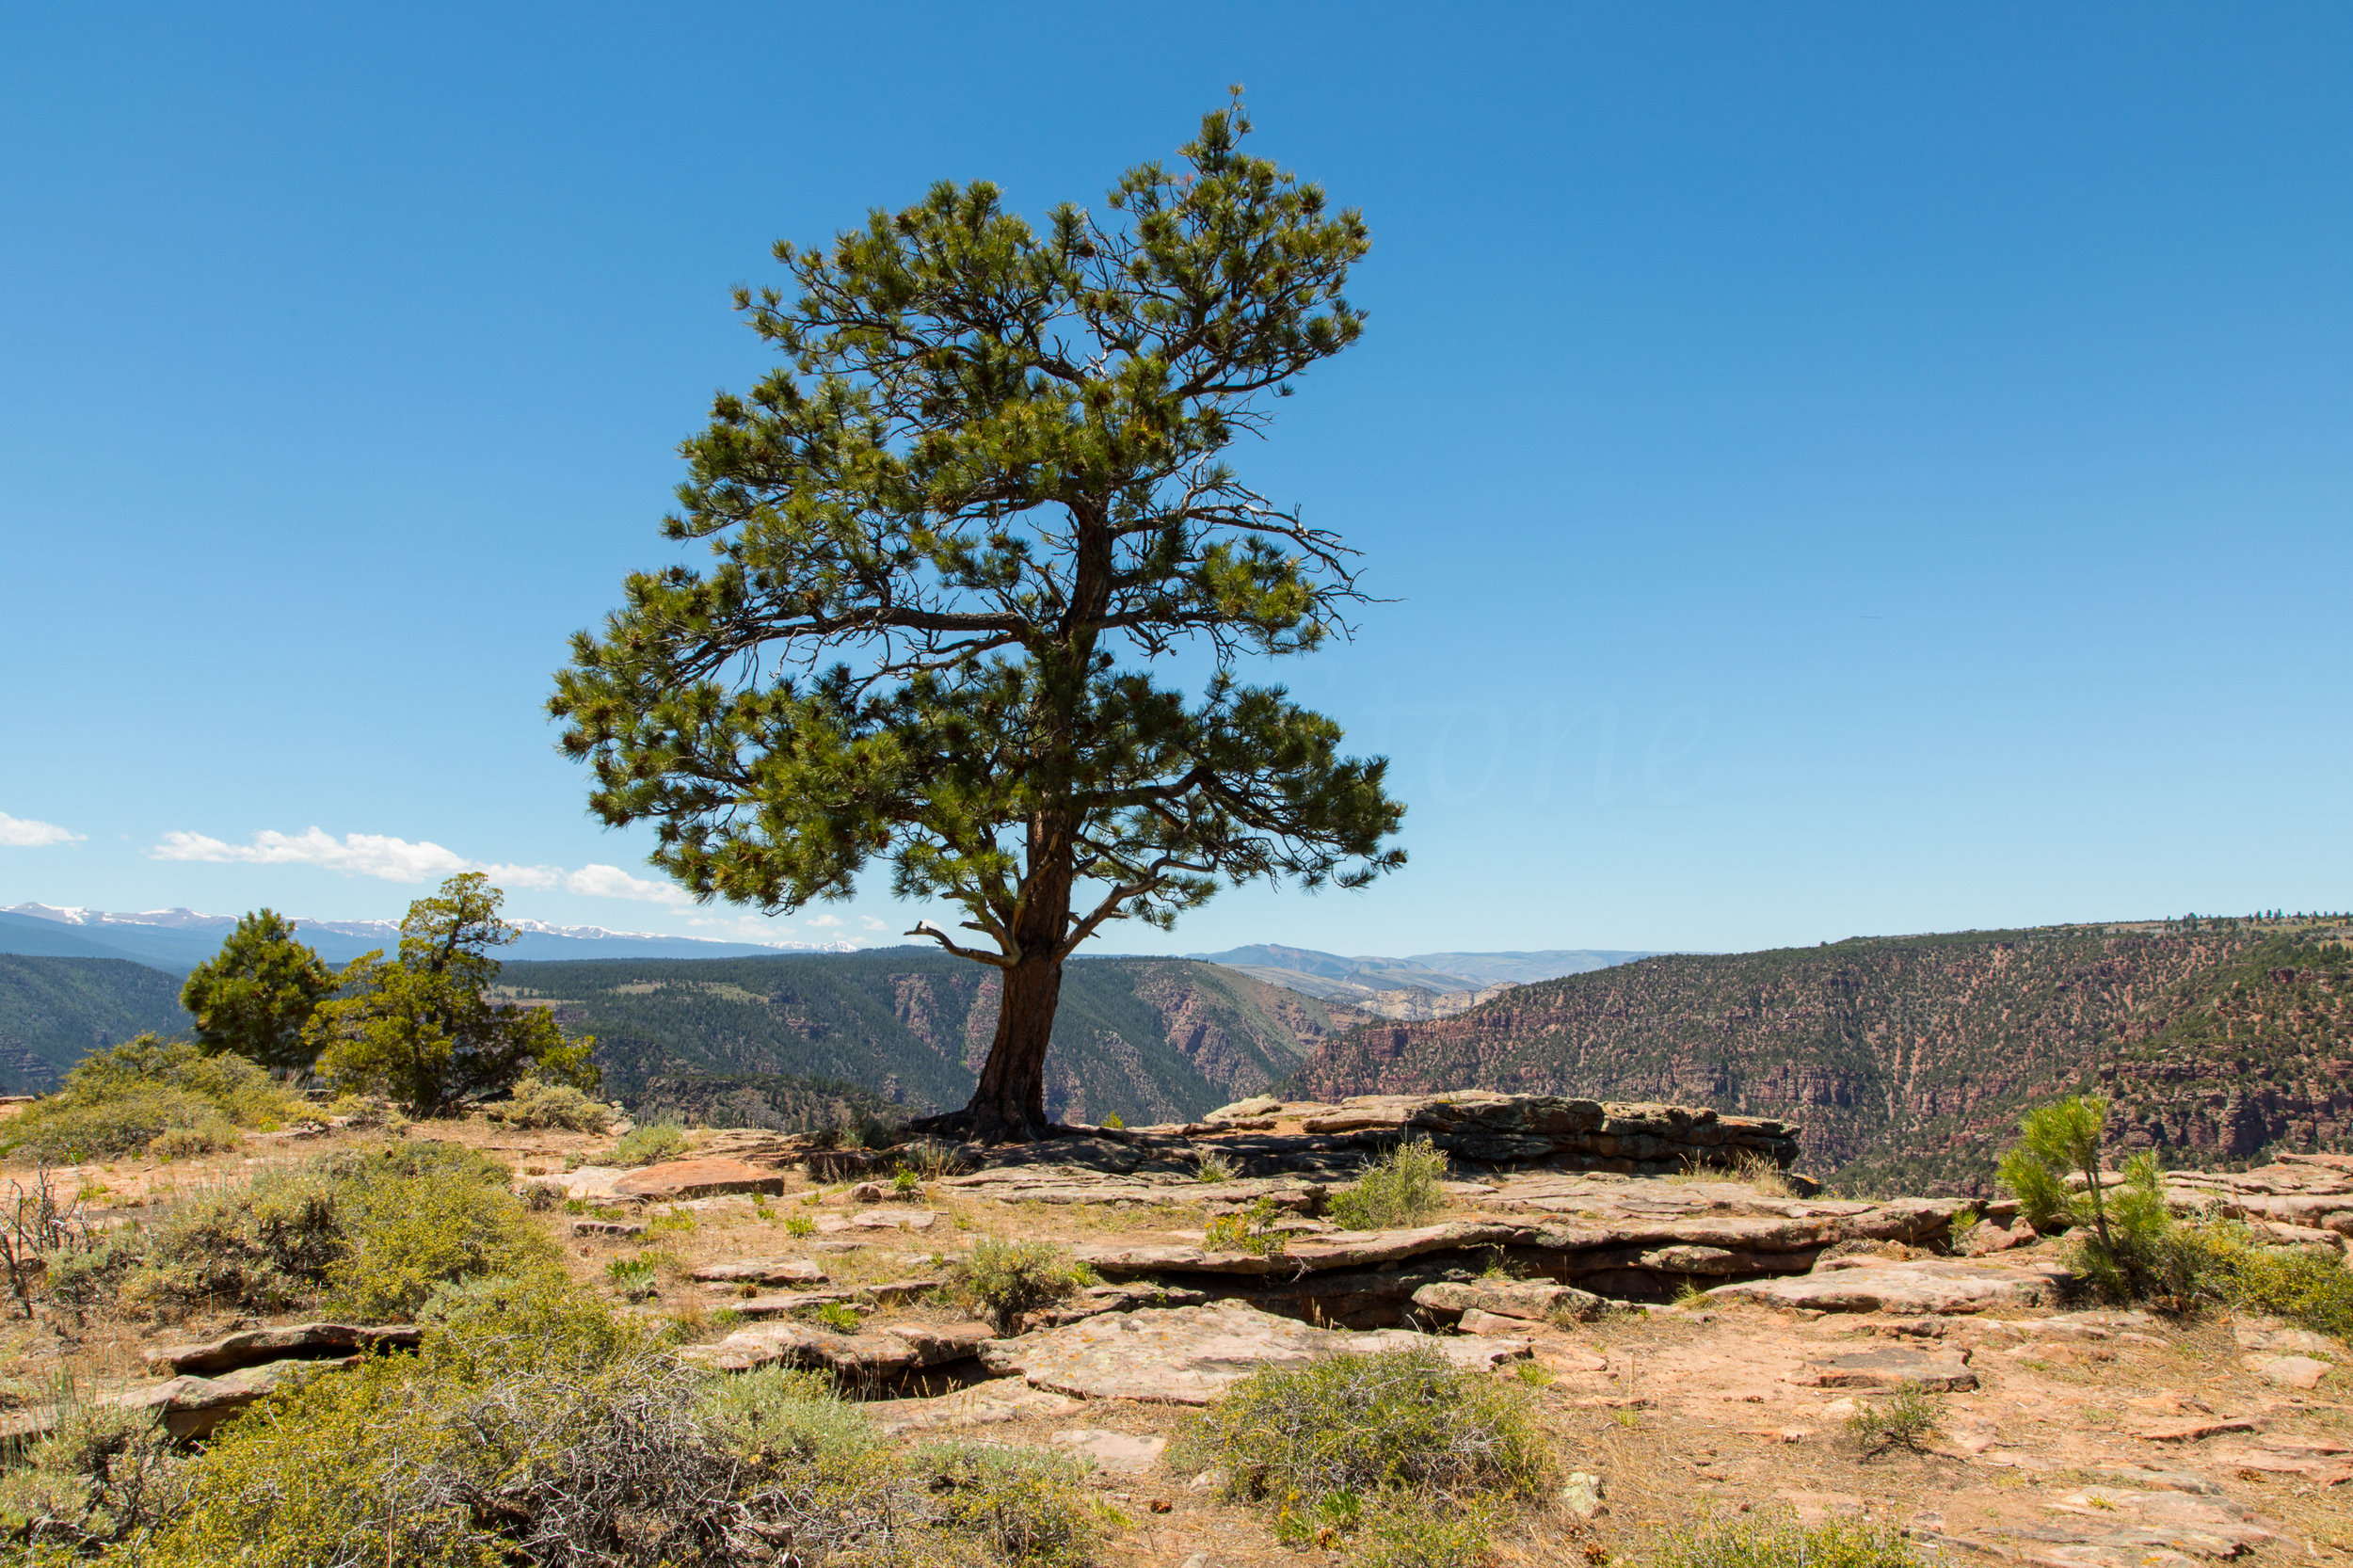 Flaming Gorge National Recreational Area, Image # 8949